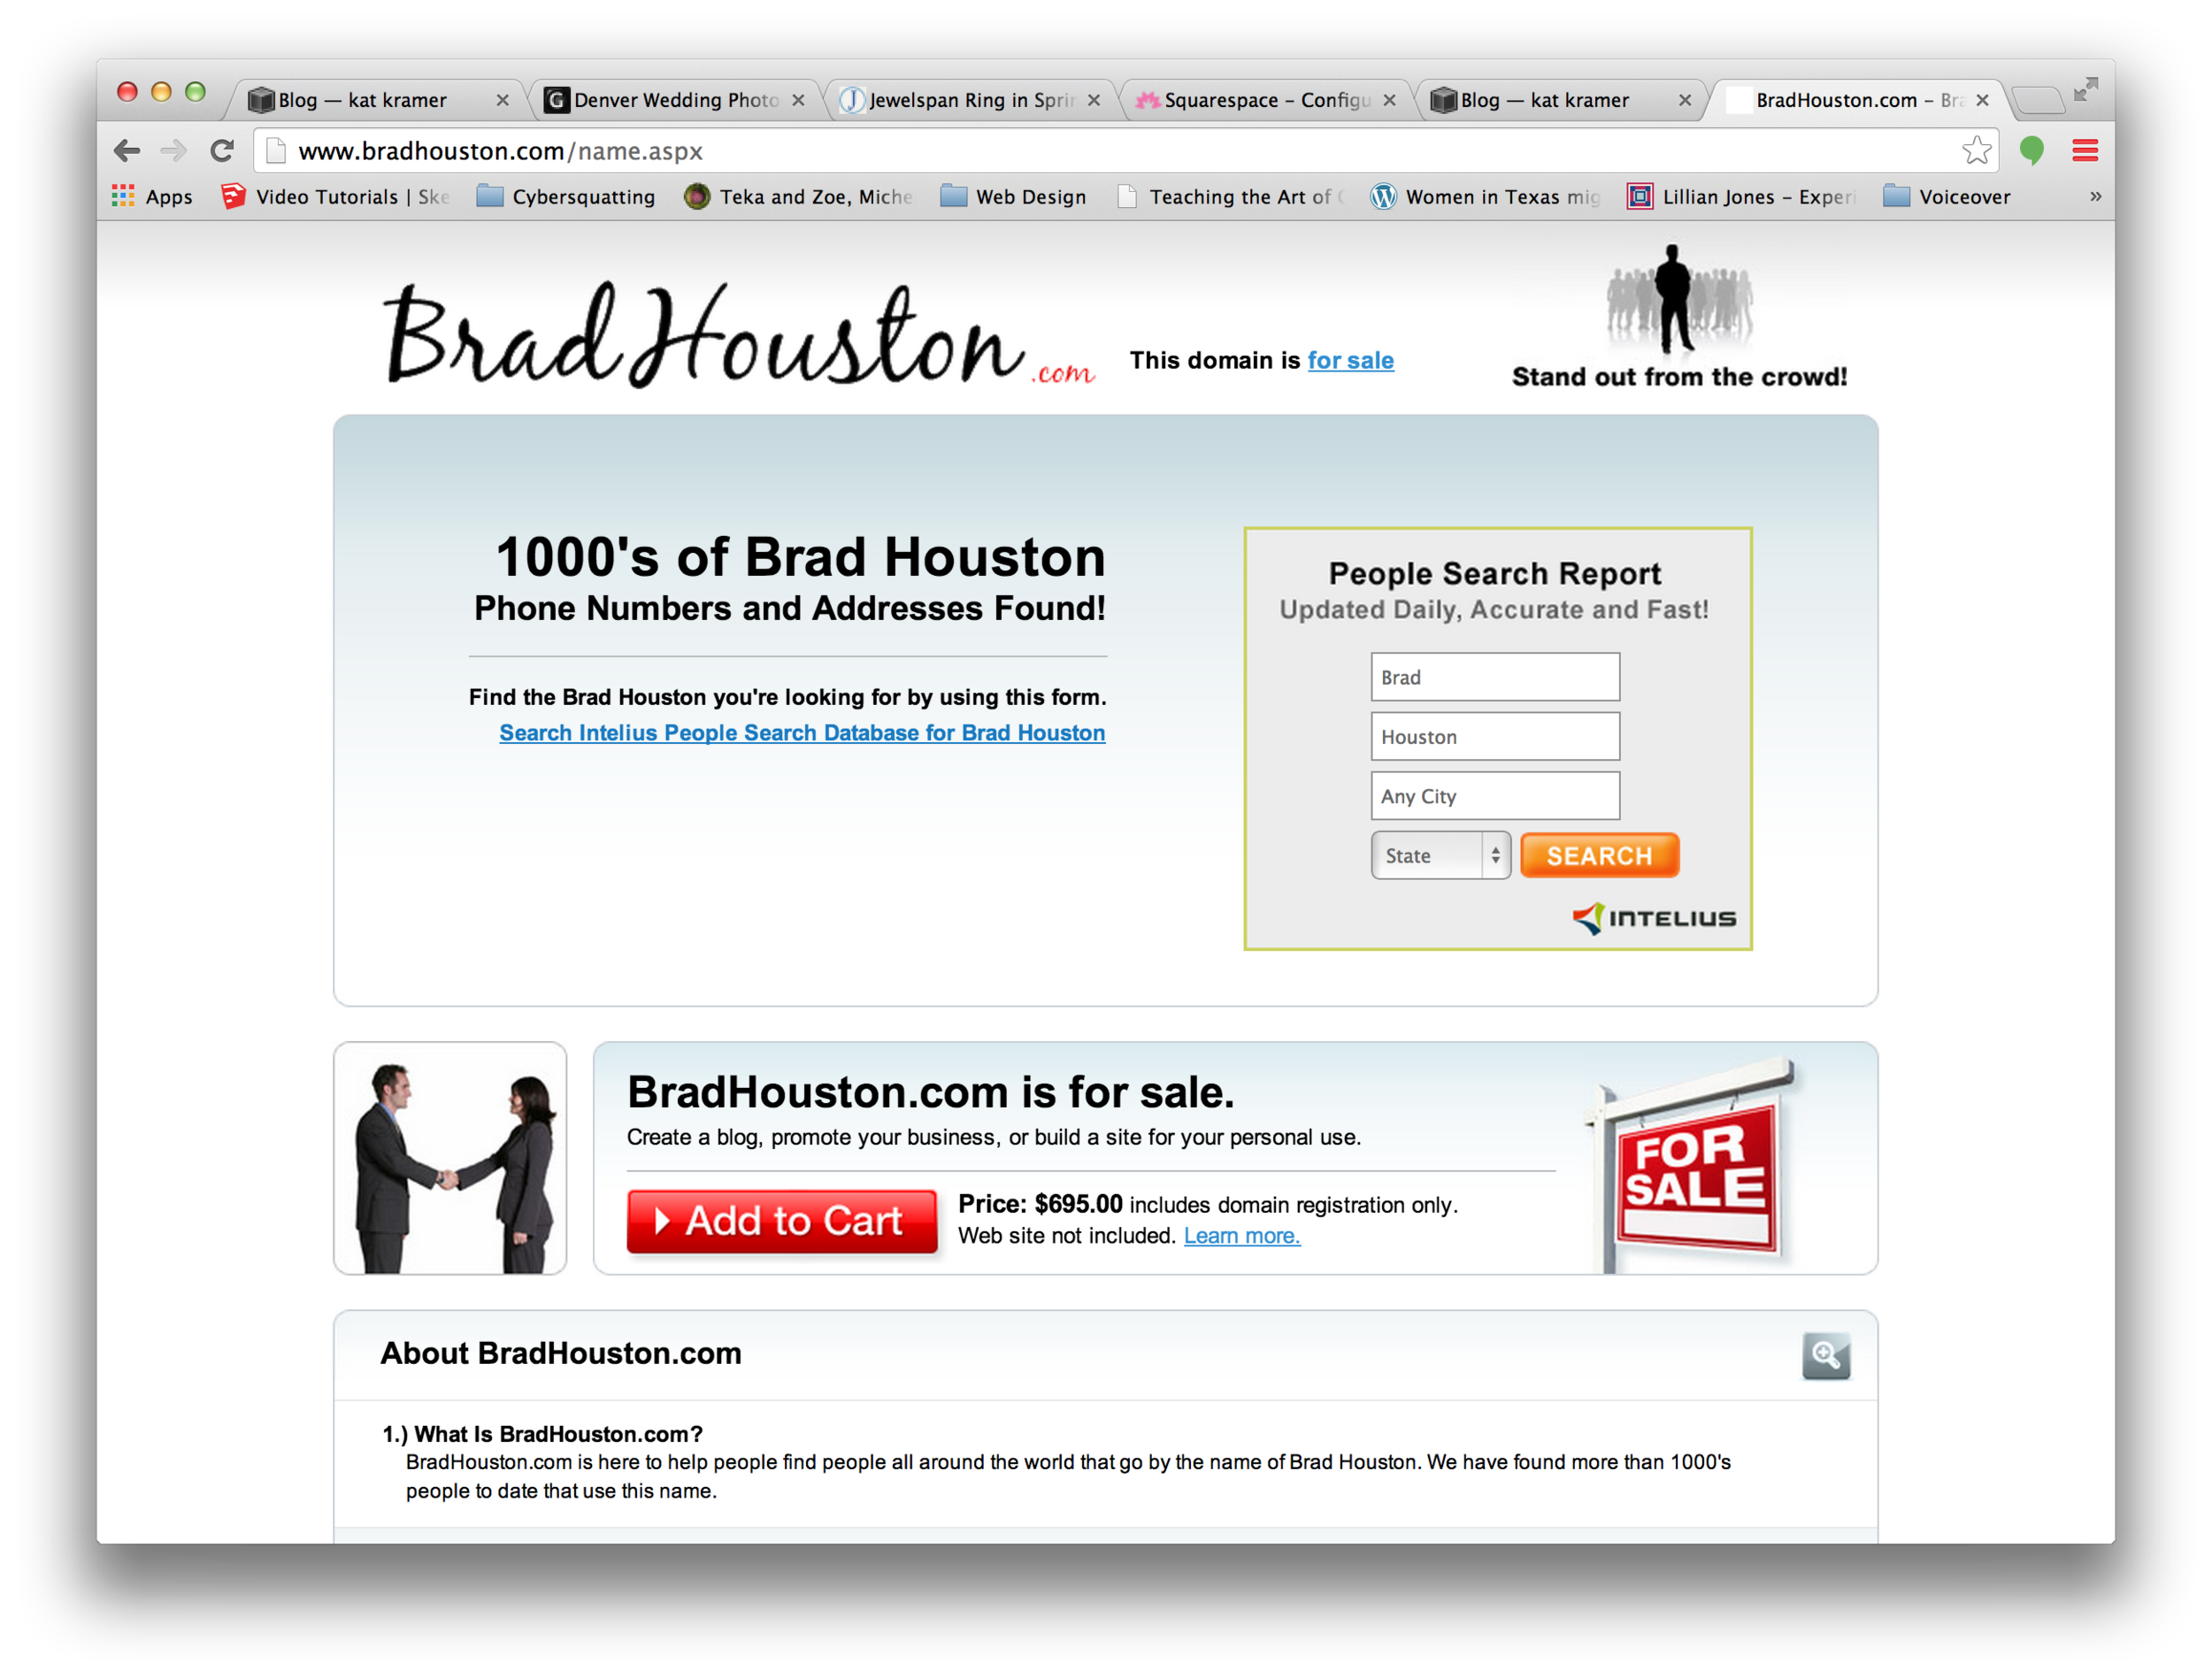 The bradhouston.com domain is for sale, with a price clearly listed on the page